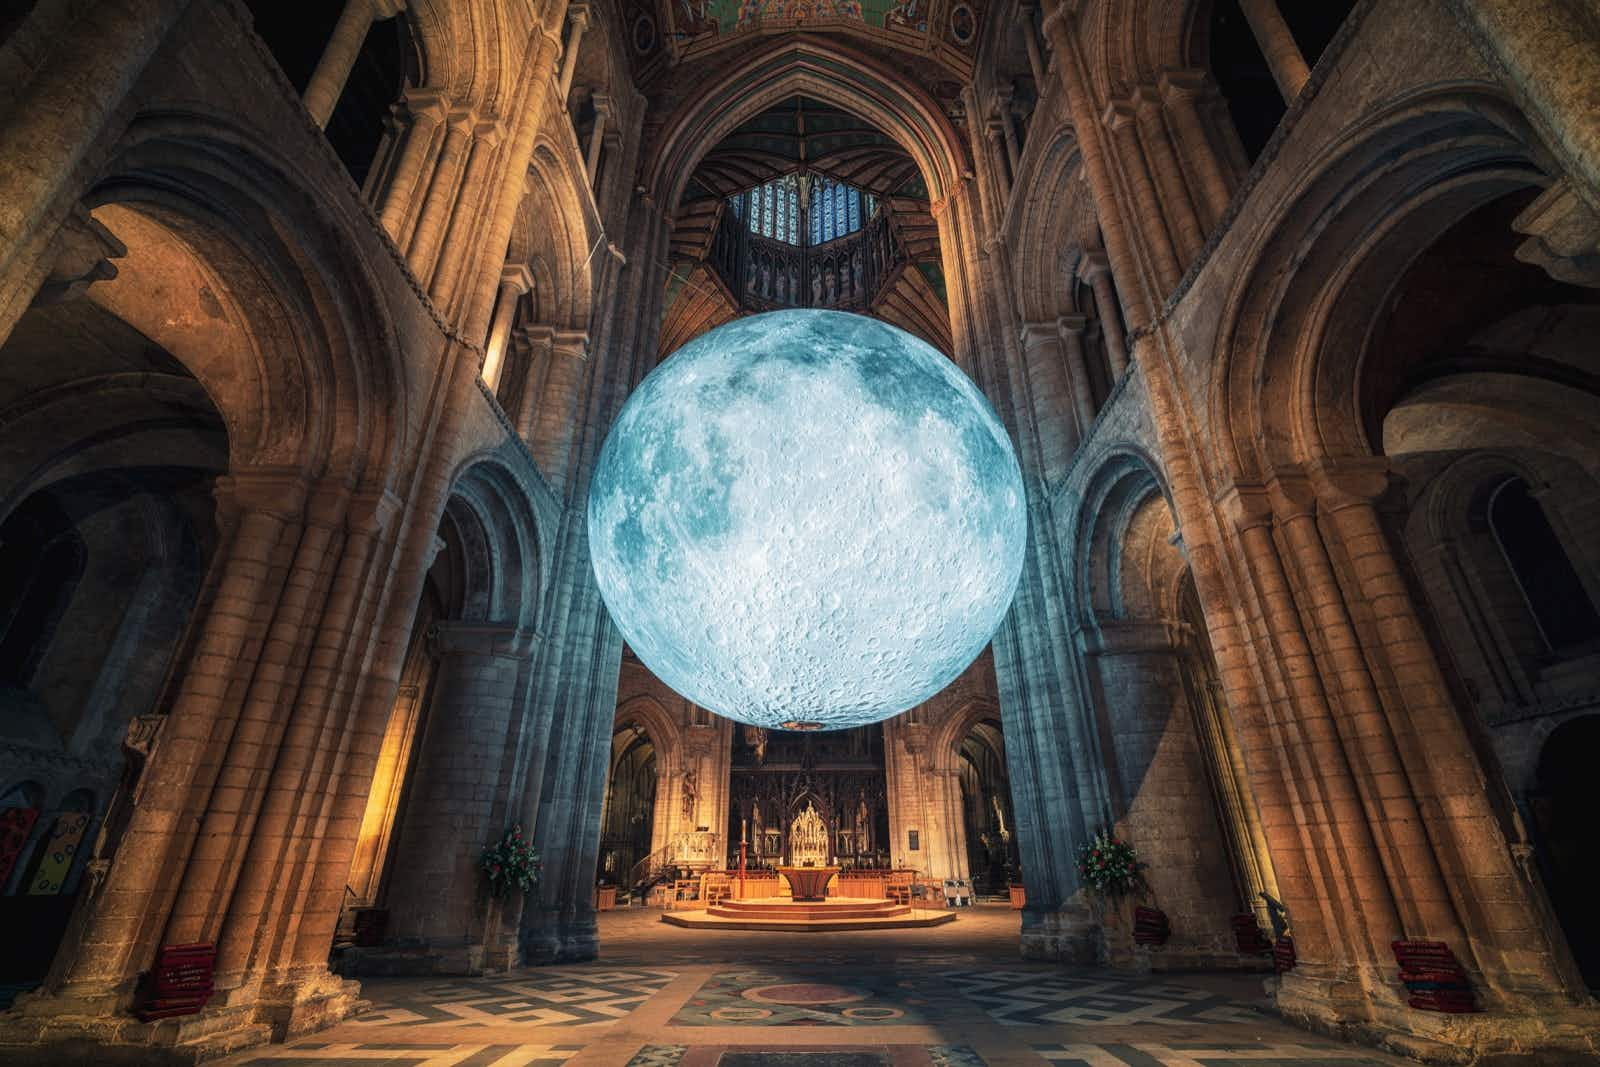 The Museum of the Moon is a 23-foot inflatable replica of the Moon © James Billings